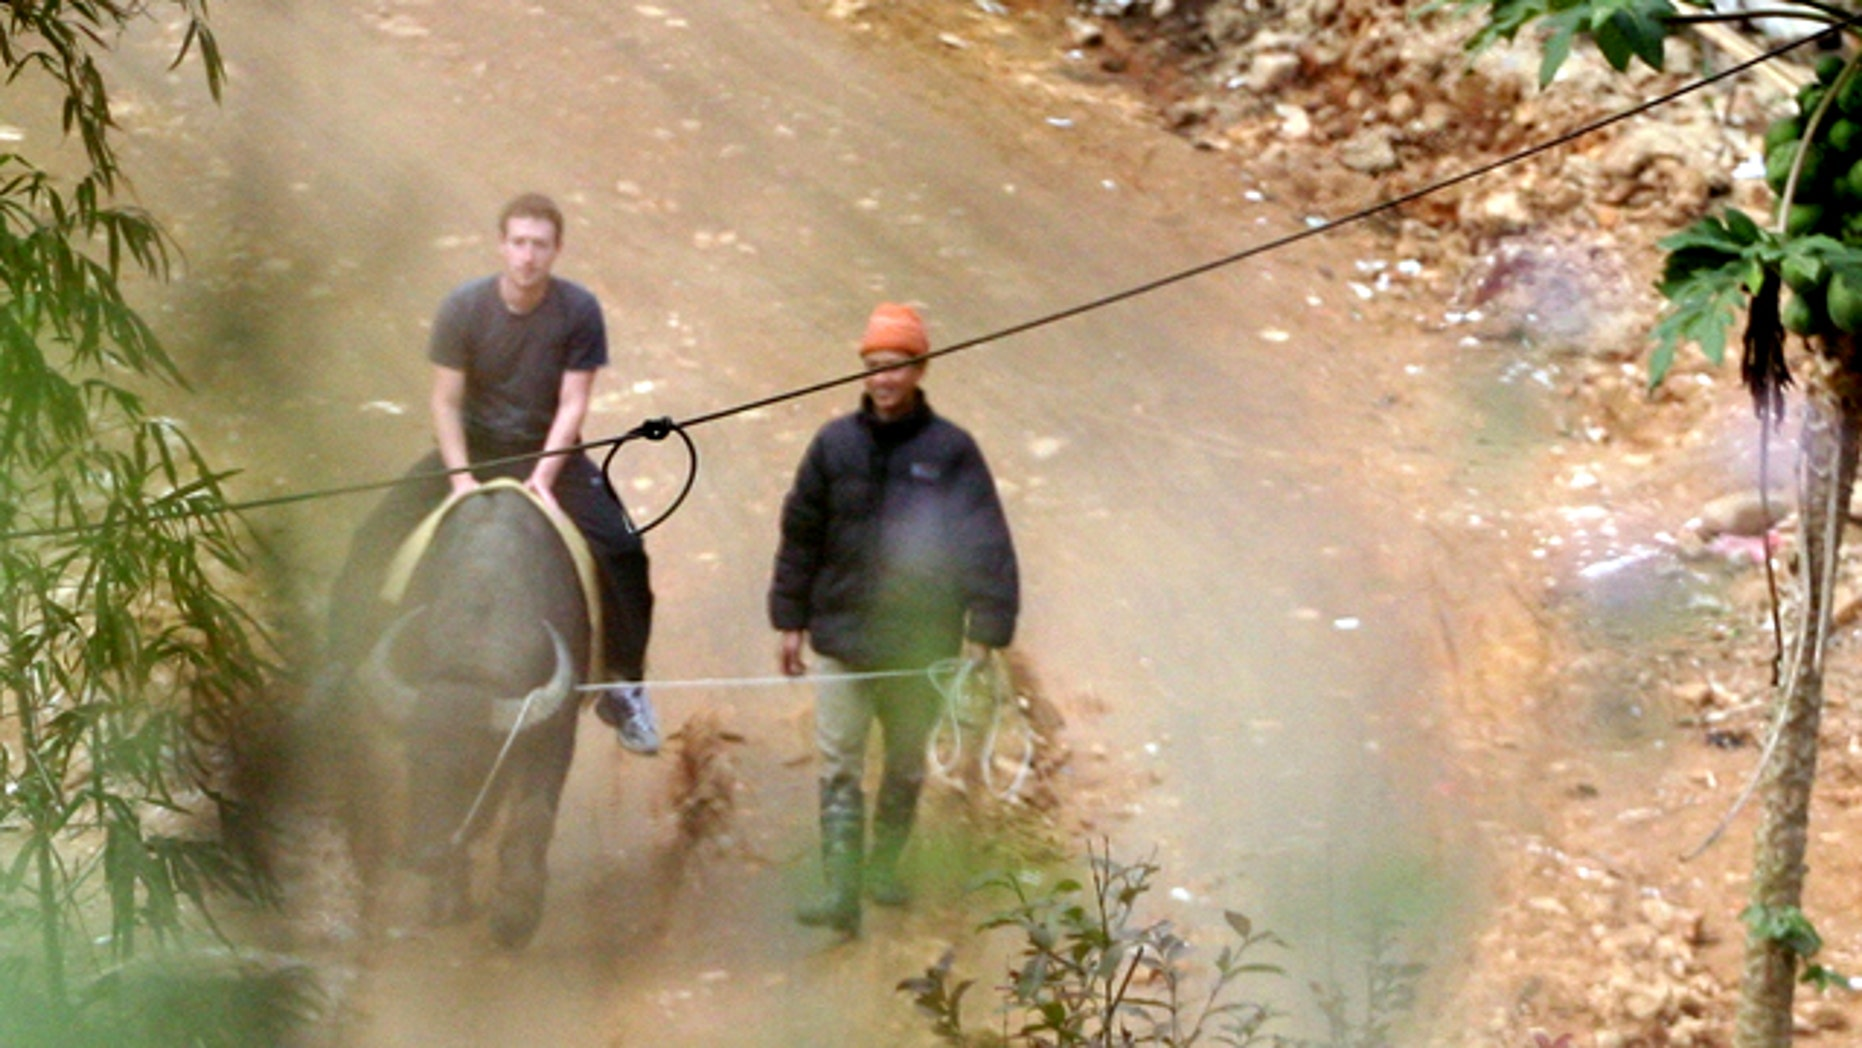 Dec. 26, 2011: Facebook-founder Mark Zuckerberg rides a water buffalo in northern resort town of Sapa in Lao Cai province. Vietnam may block its citizens from using to Facebook, but that didn't stop Zuckerberg from spending his vacation there.